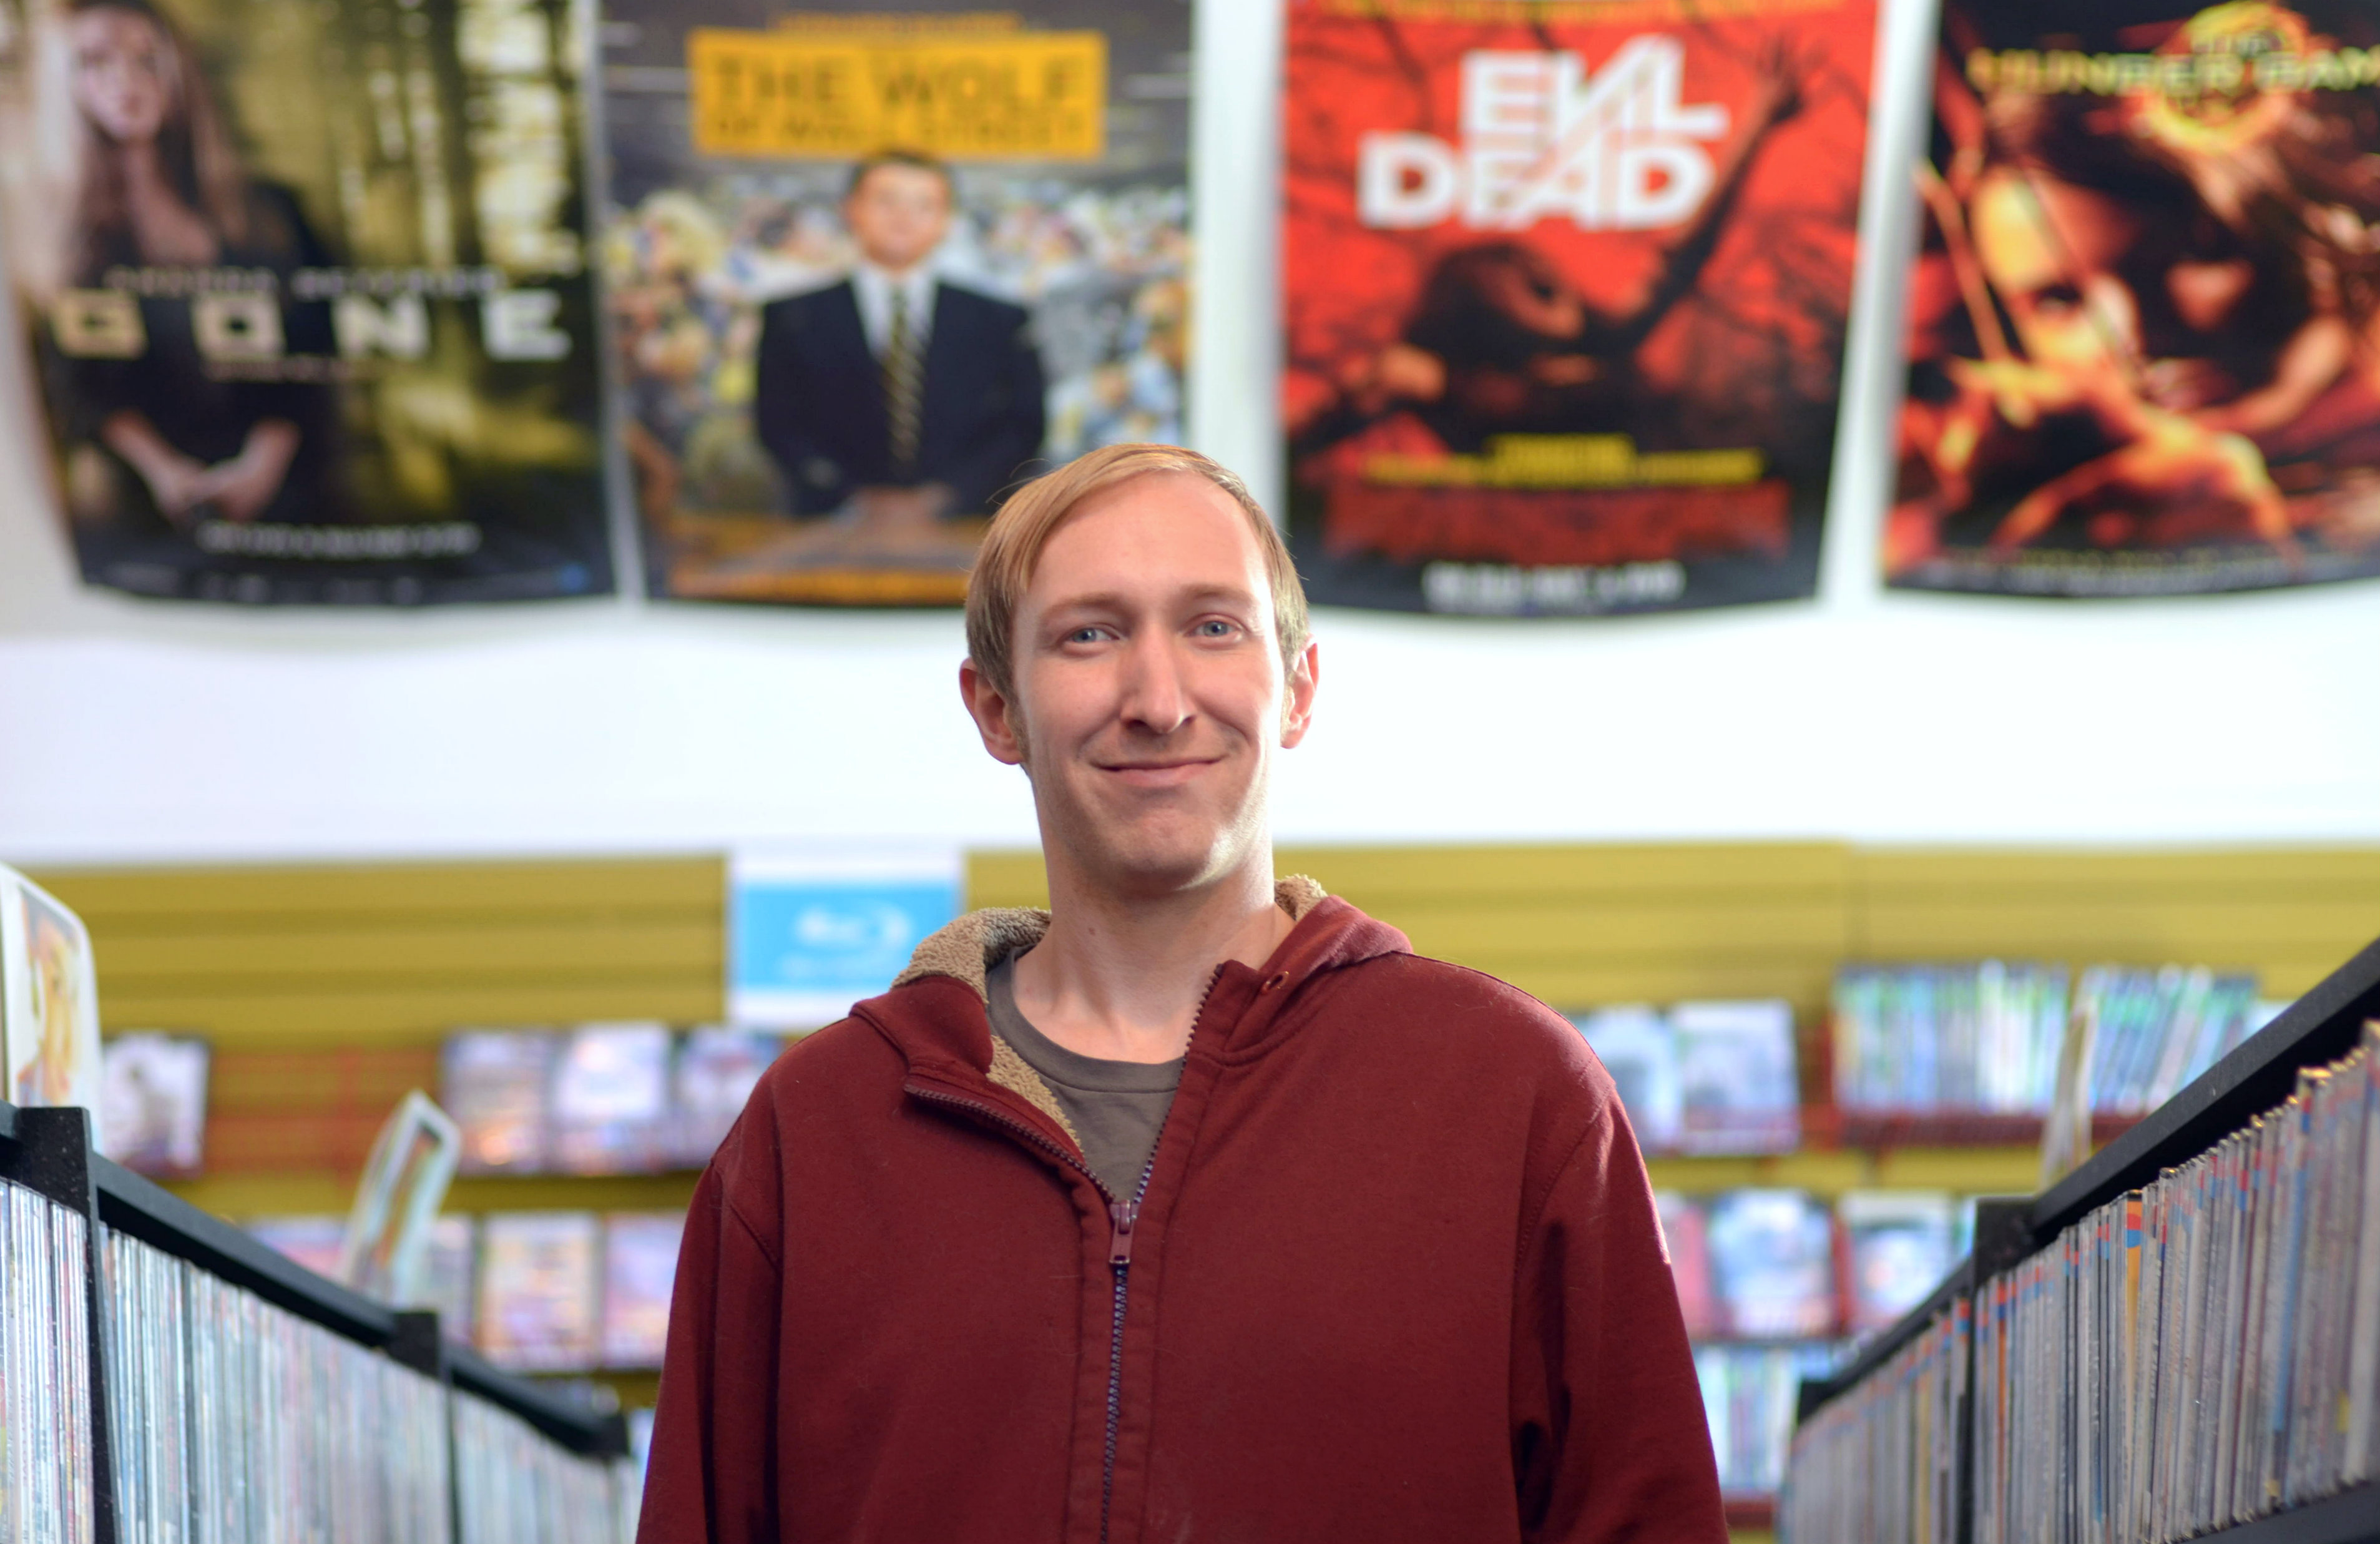 Photo: Jeff Hahn, Owner Of Video One In Denver